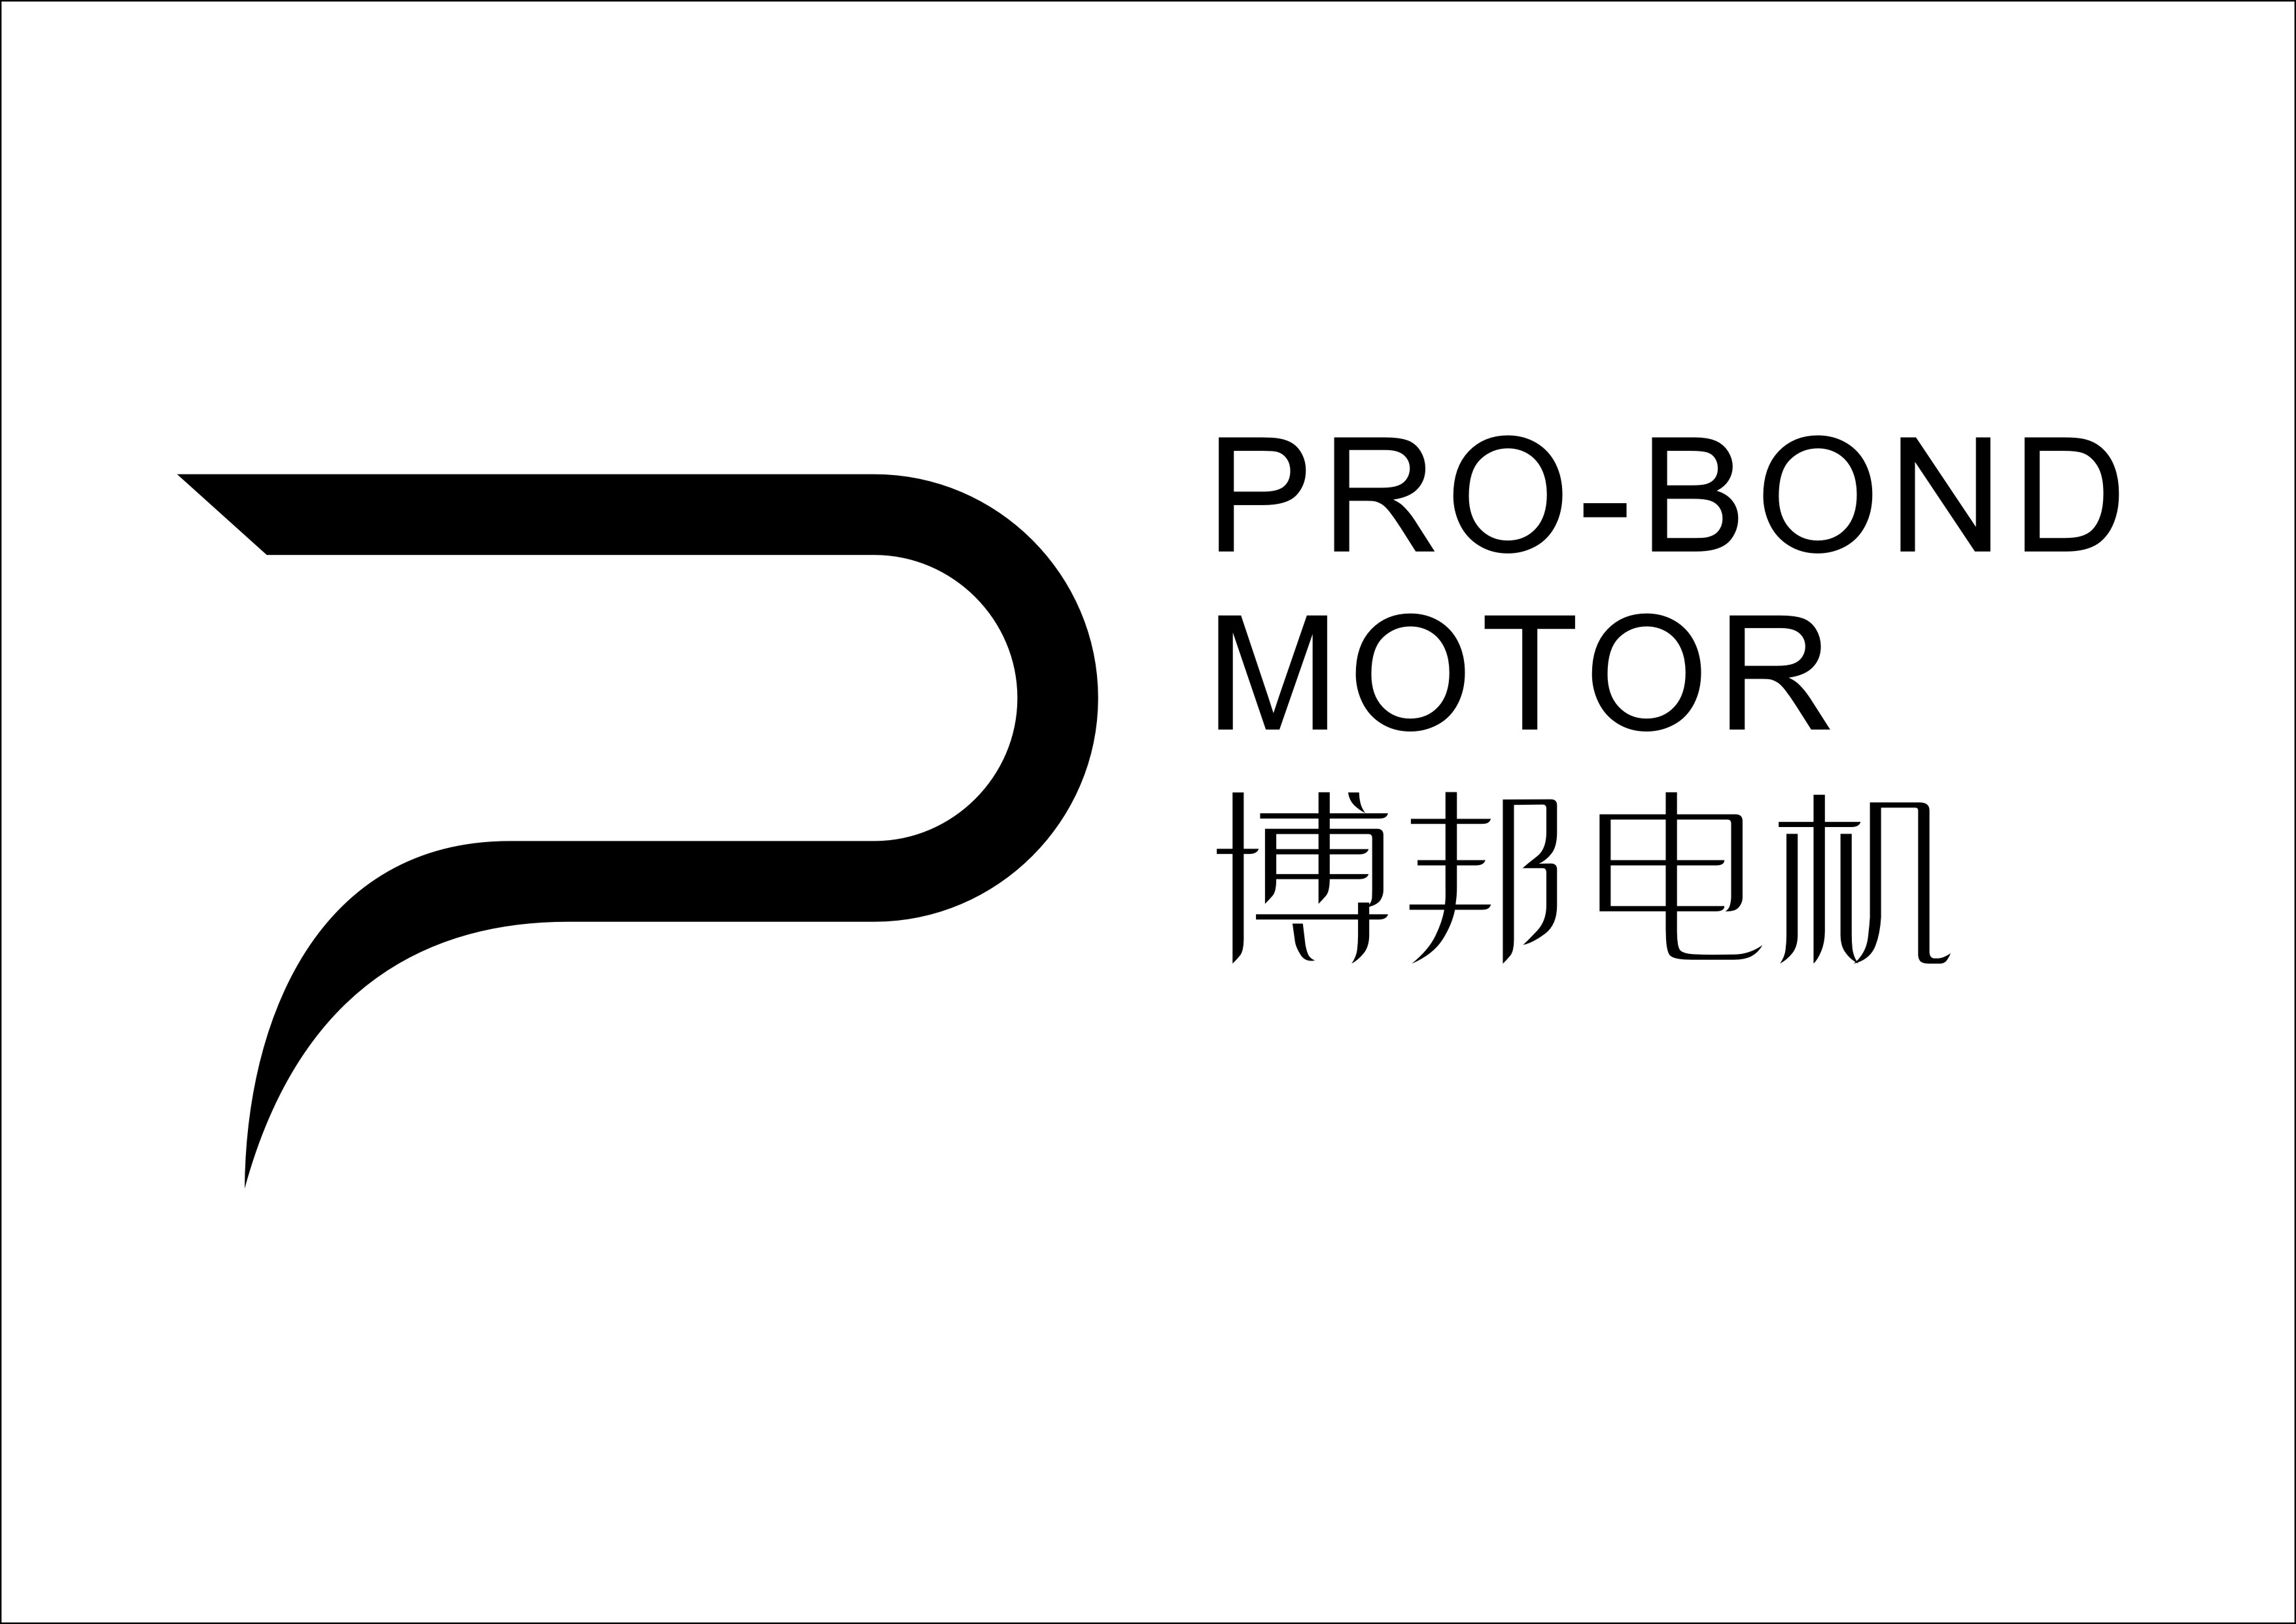 Changzhou Probond Motor Co Ltd